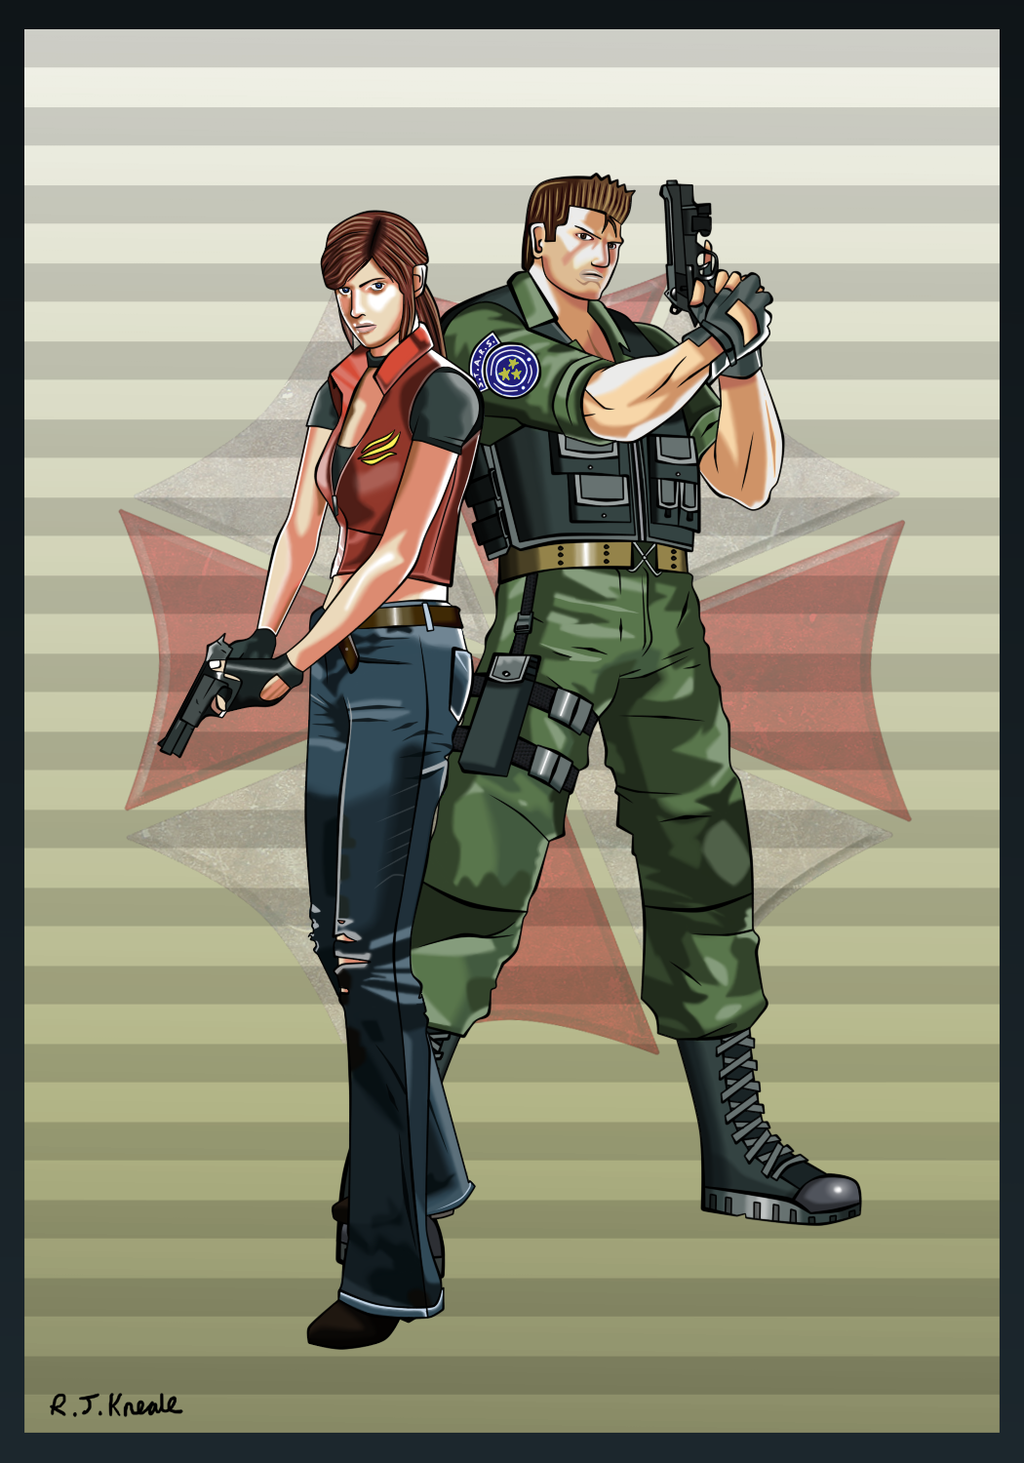 resident_evil___chris_and_claire_by_rittie145-daynjkd.png - Resident Evil Code: Veronica X